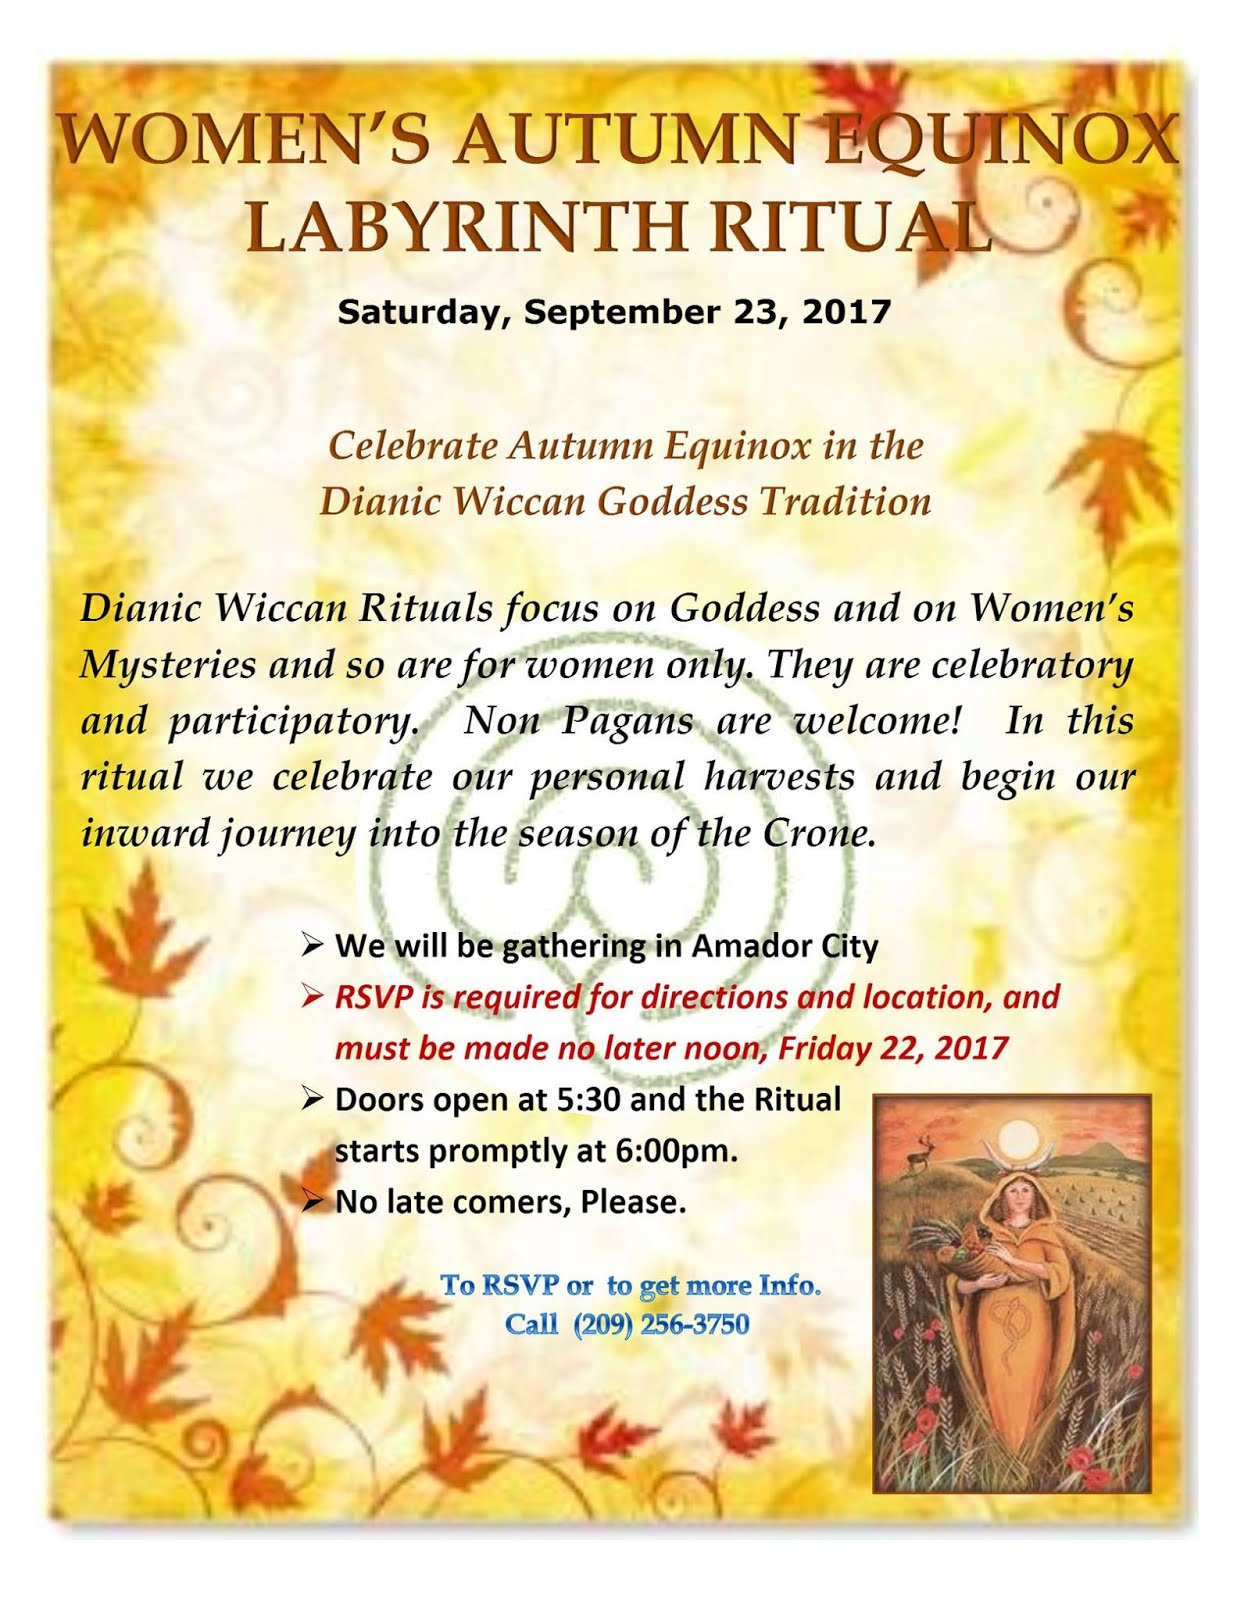 Women's Autumn Equinox Labyrinth Ritual - Sept 23